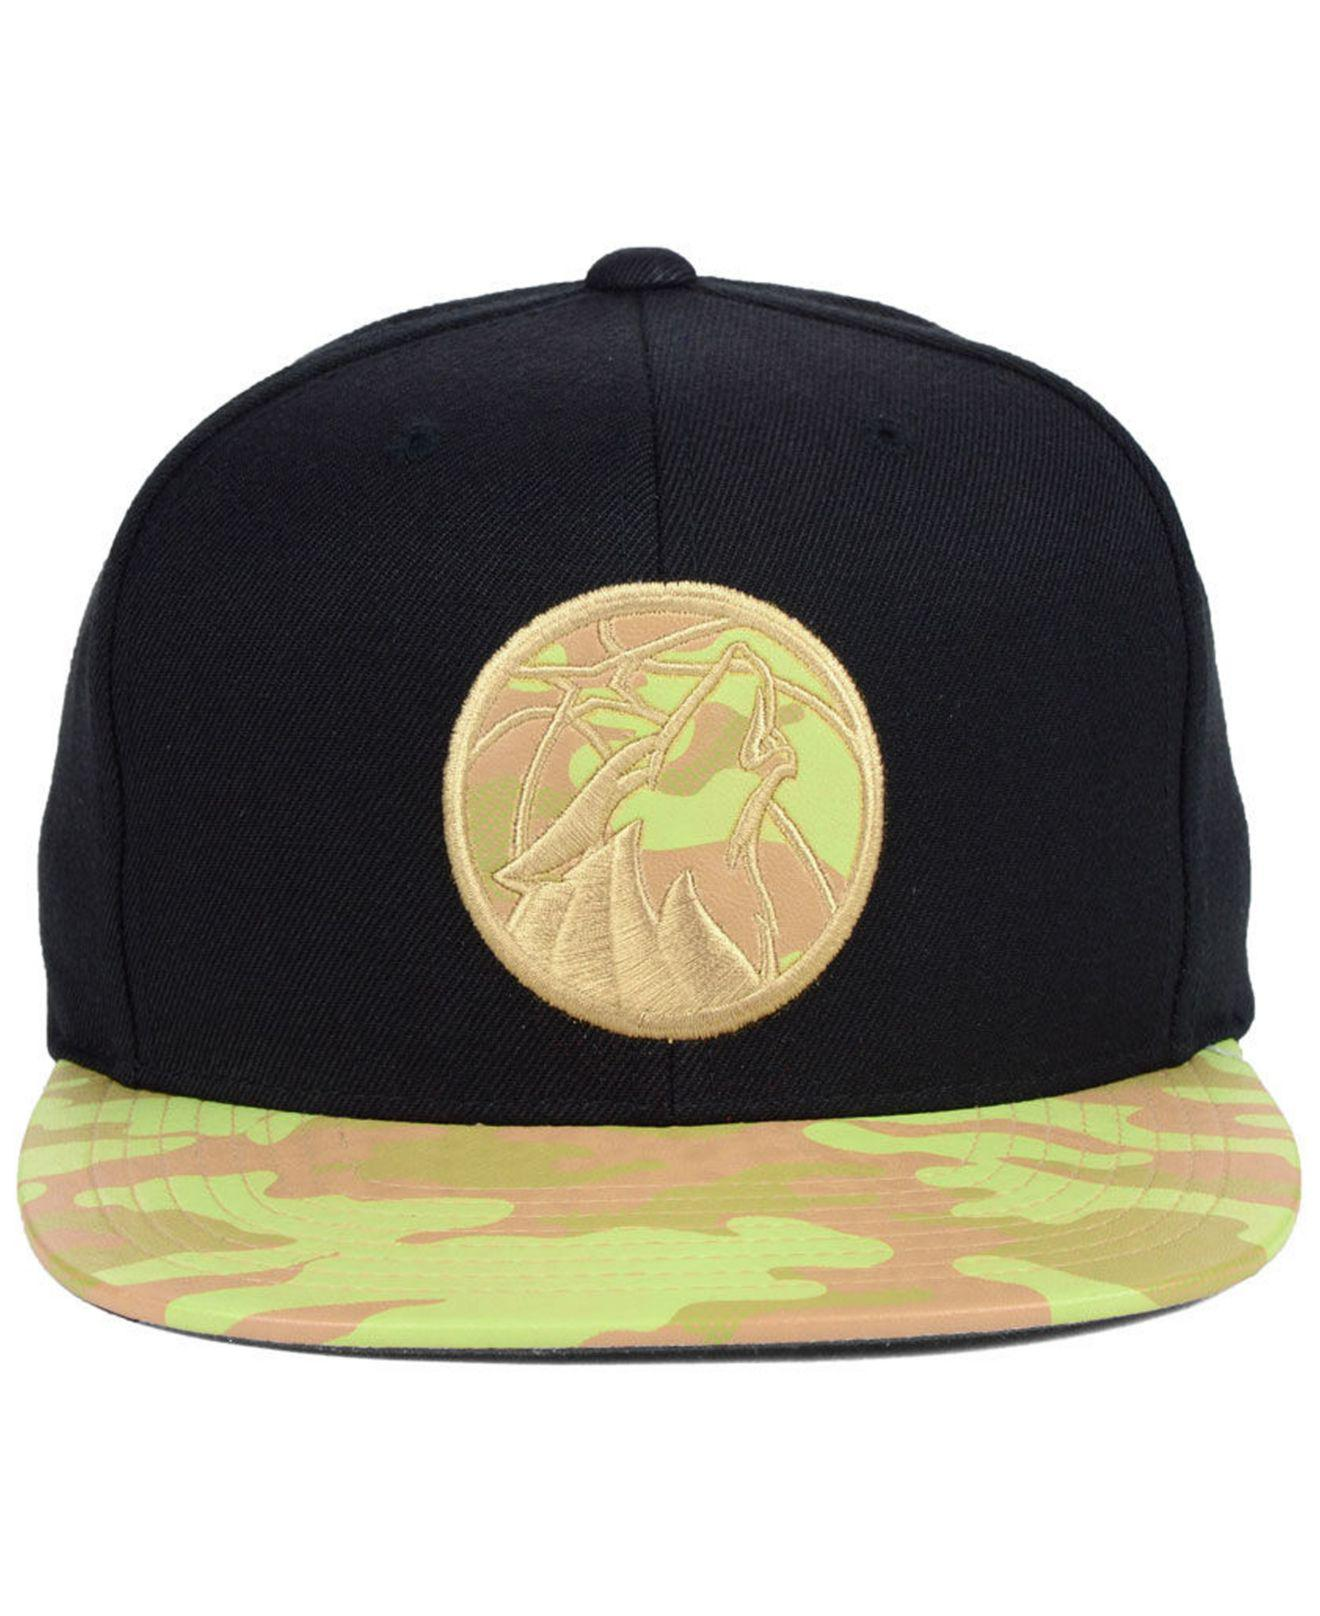 separation shoes ed064 ea9b2 Mitchell   Ness Minnesota Timberwolves Natural Camo Snapback Cap in ...